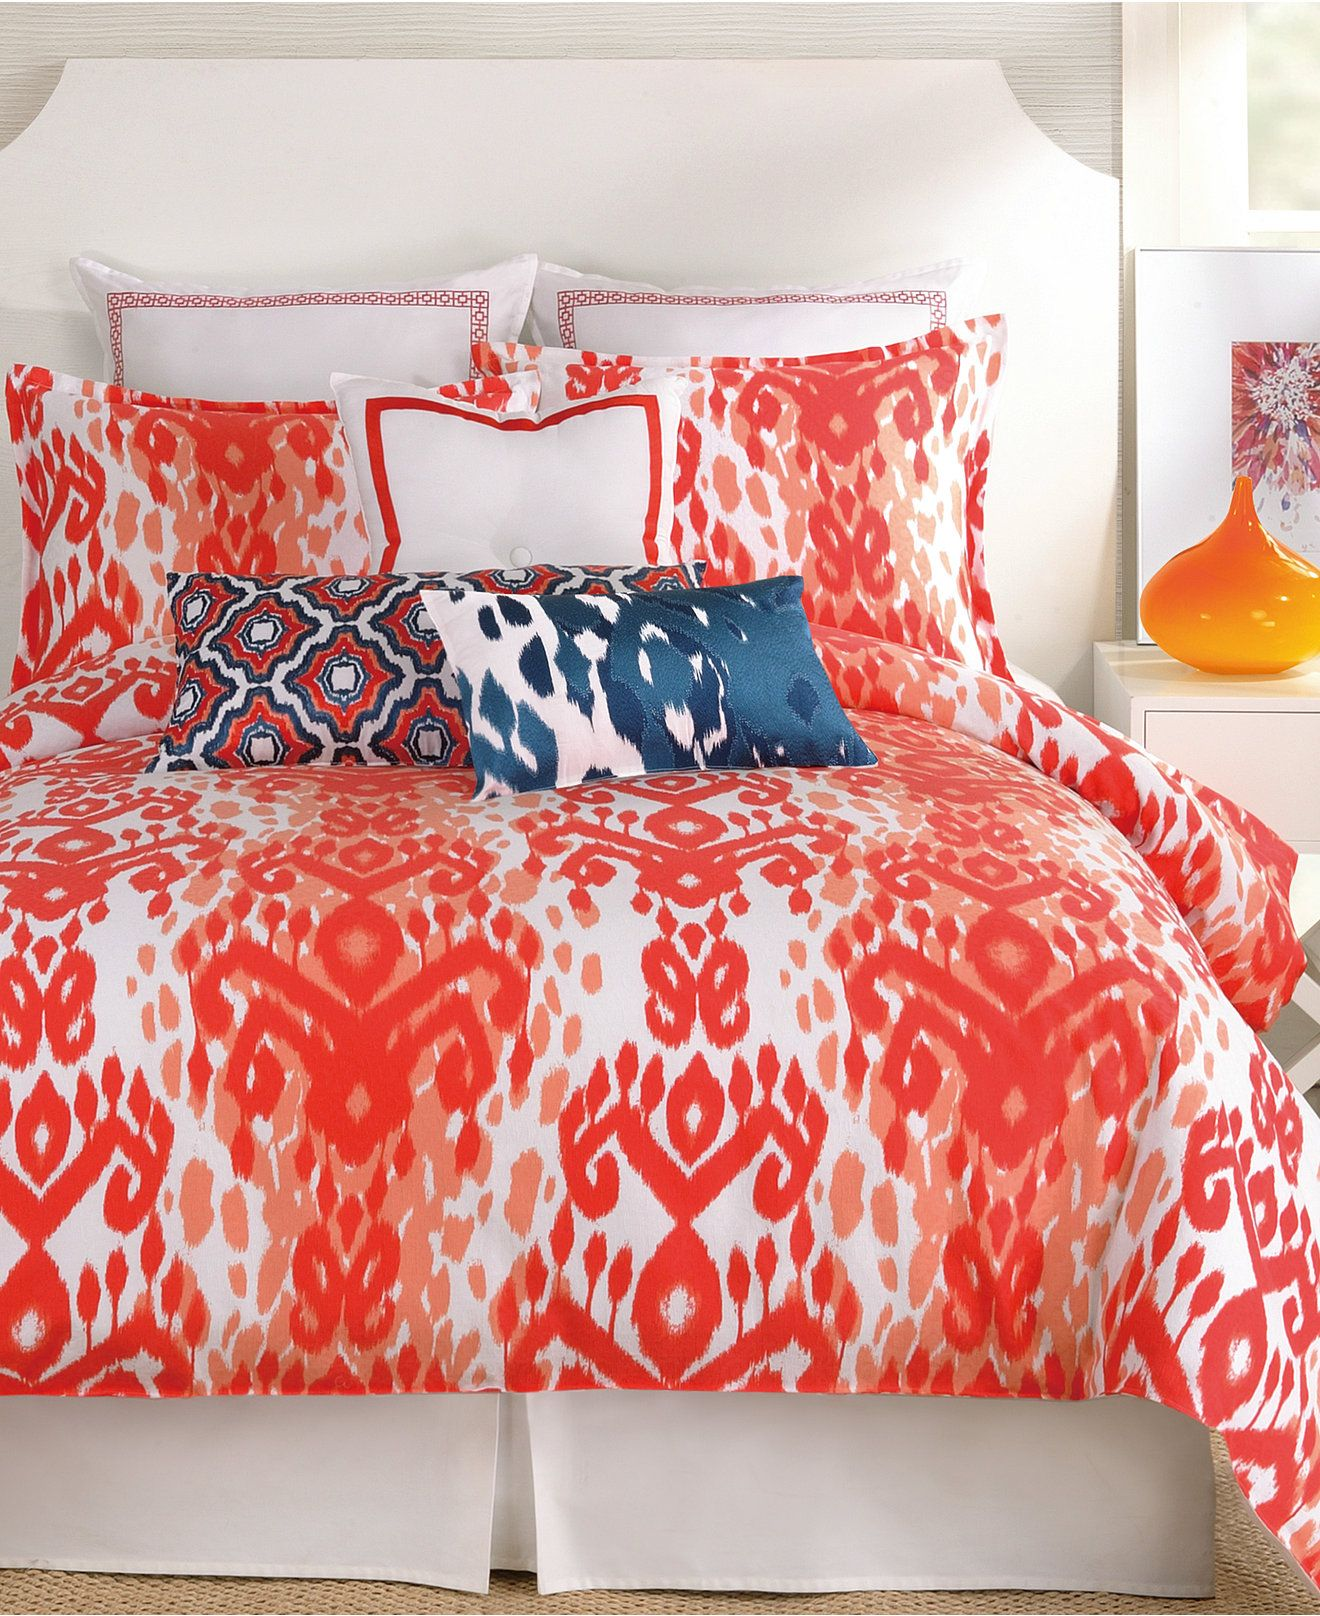 bed trina bedding ikat pin comforter sets a cover bag and in duvet turk